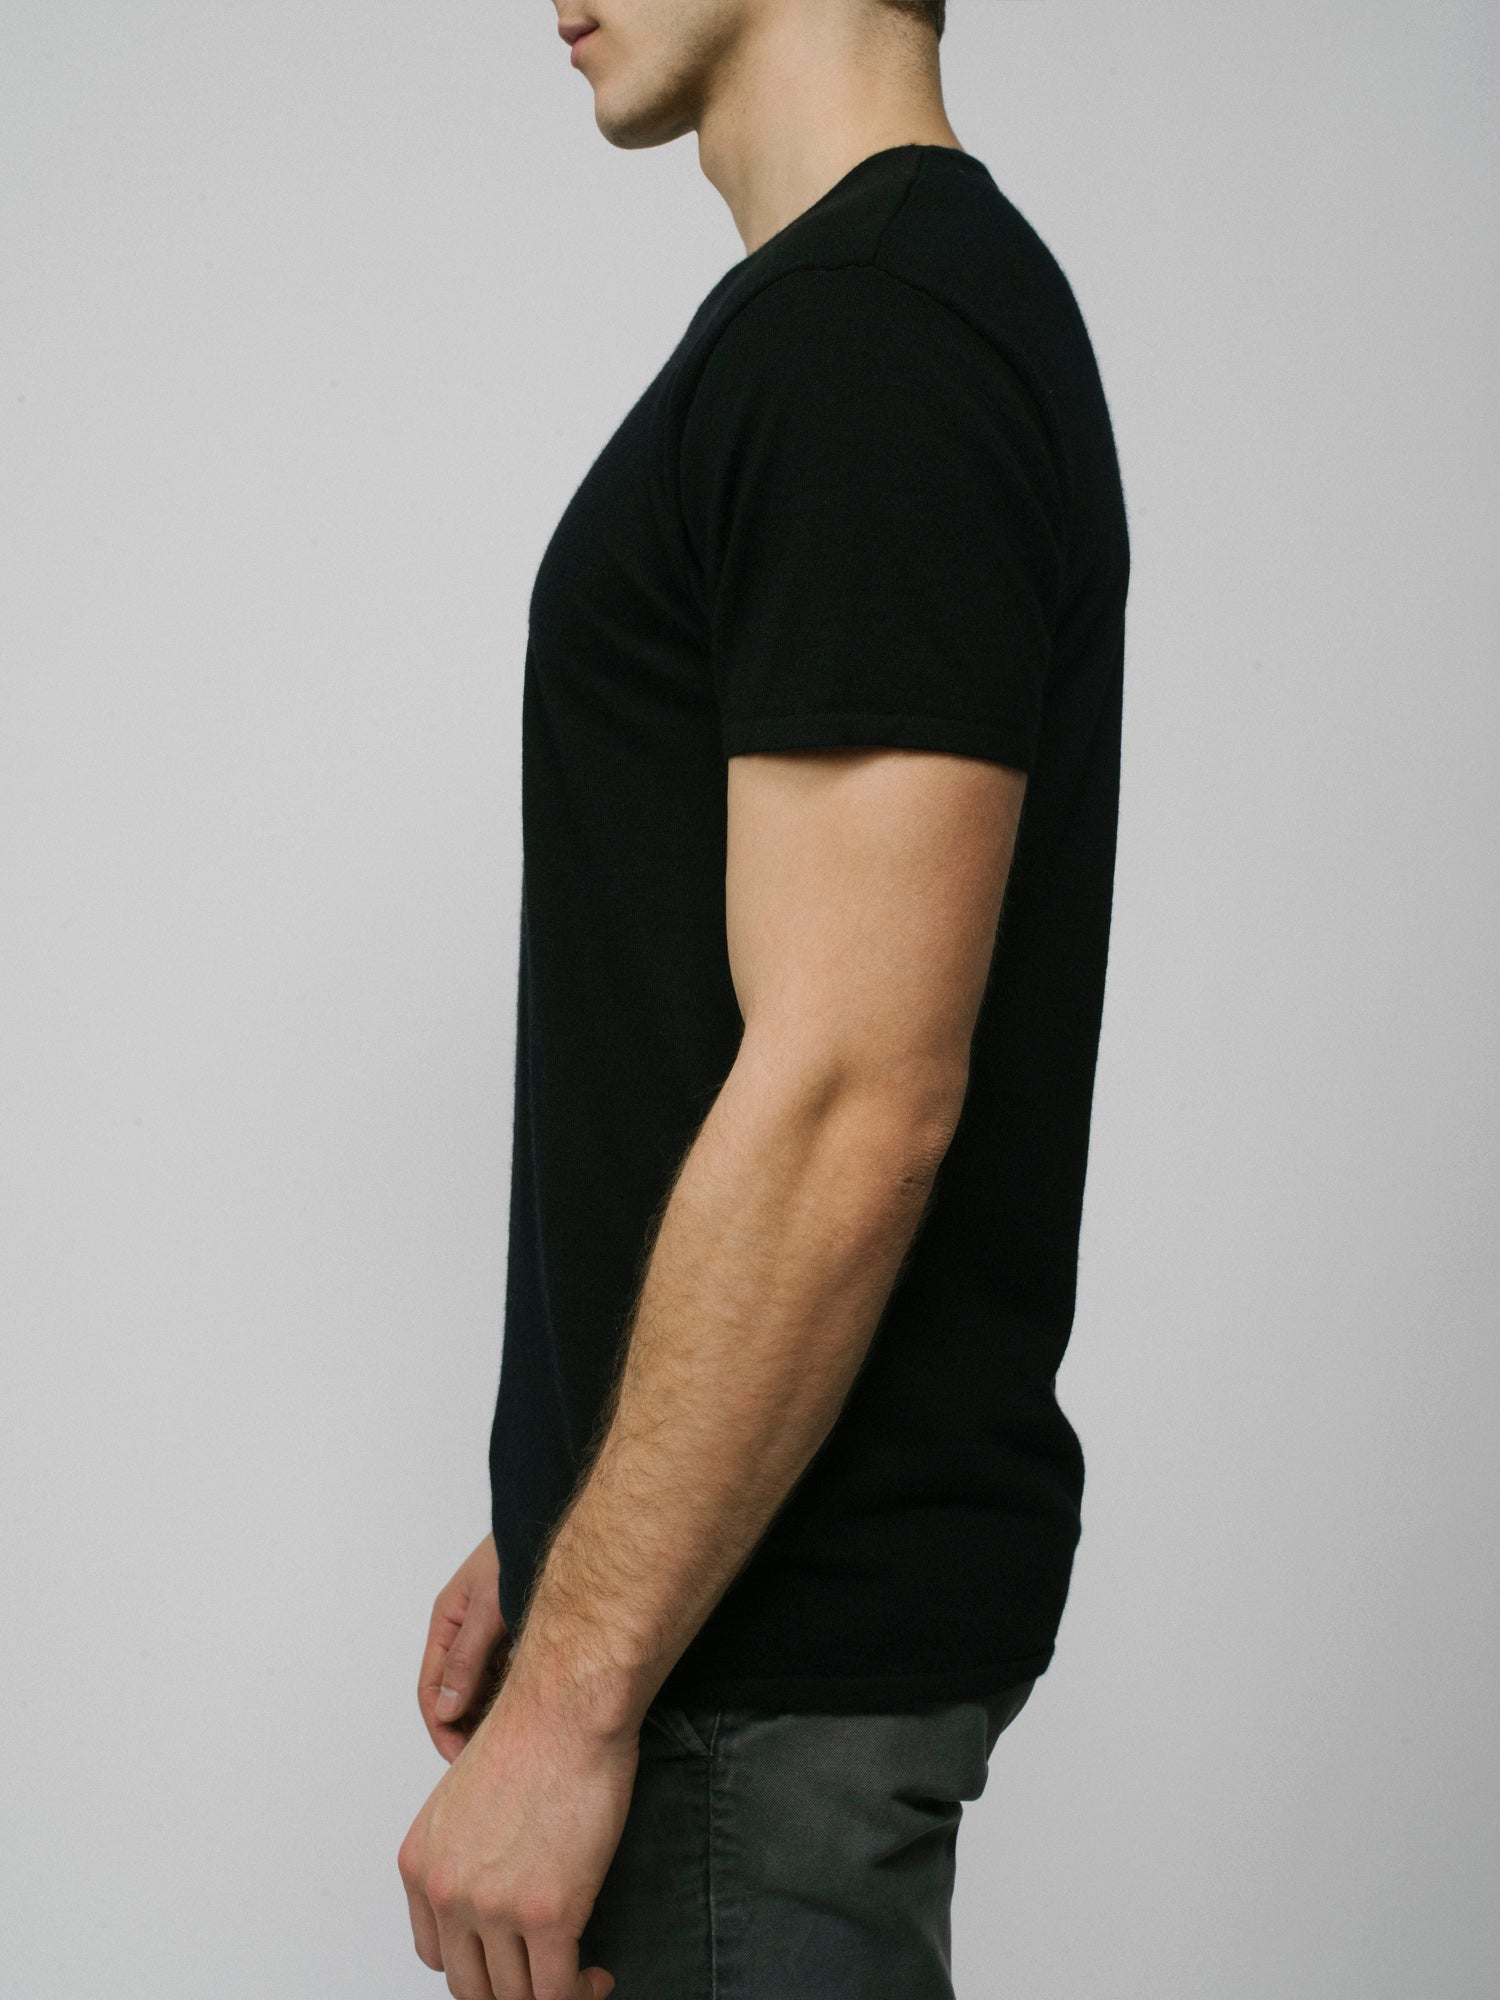 100% Cashmere T-Shirt - Men's Black